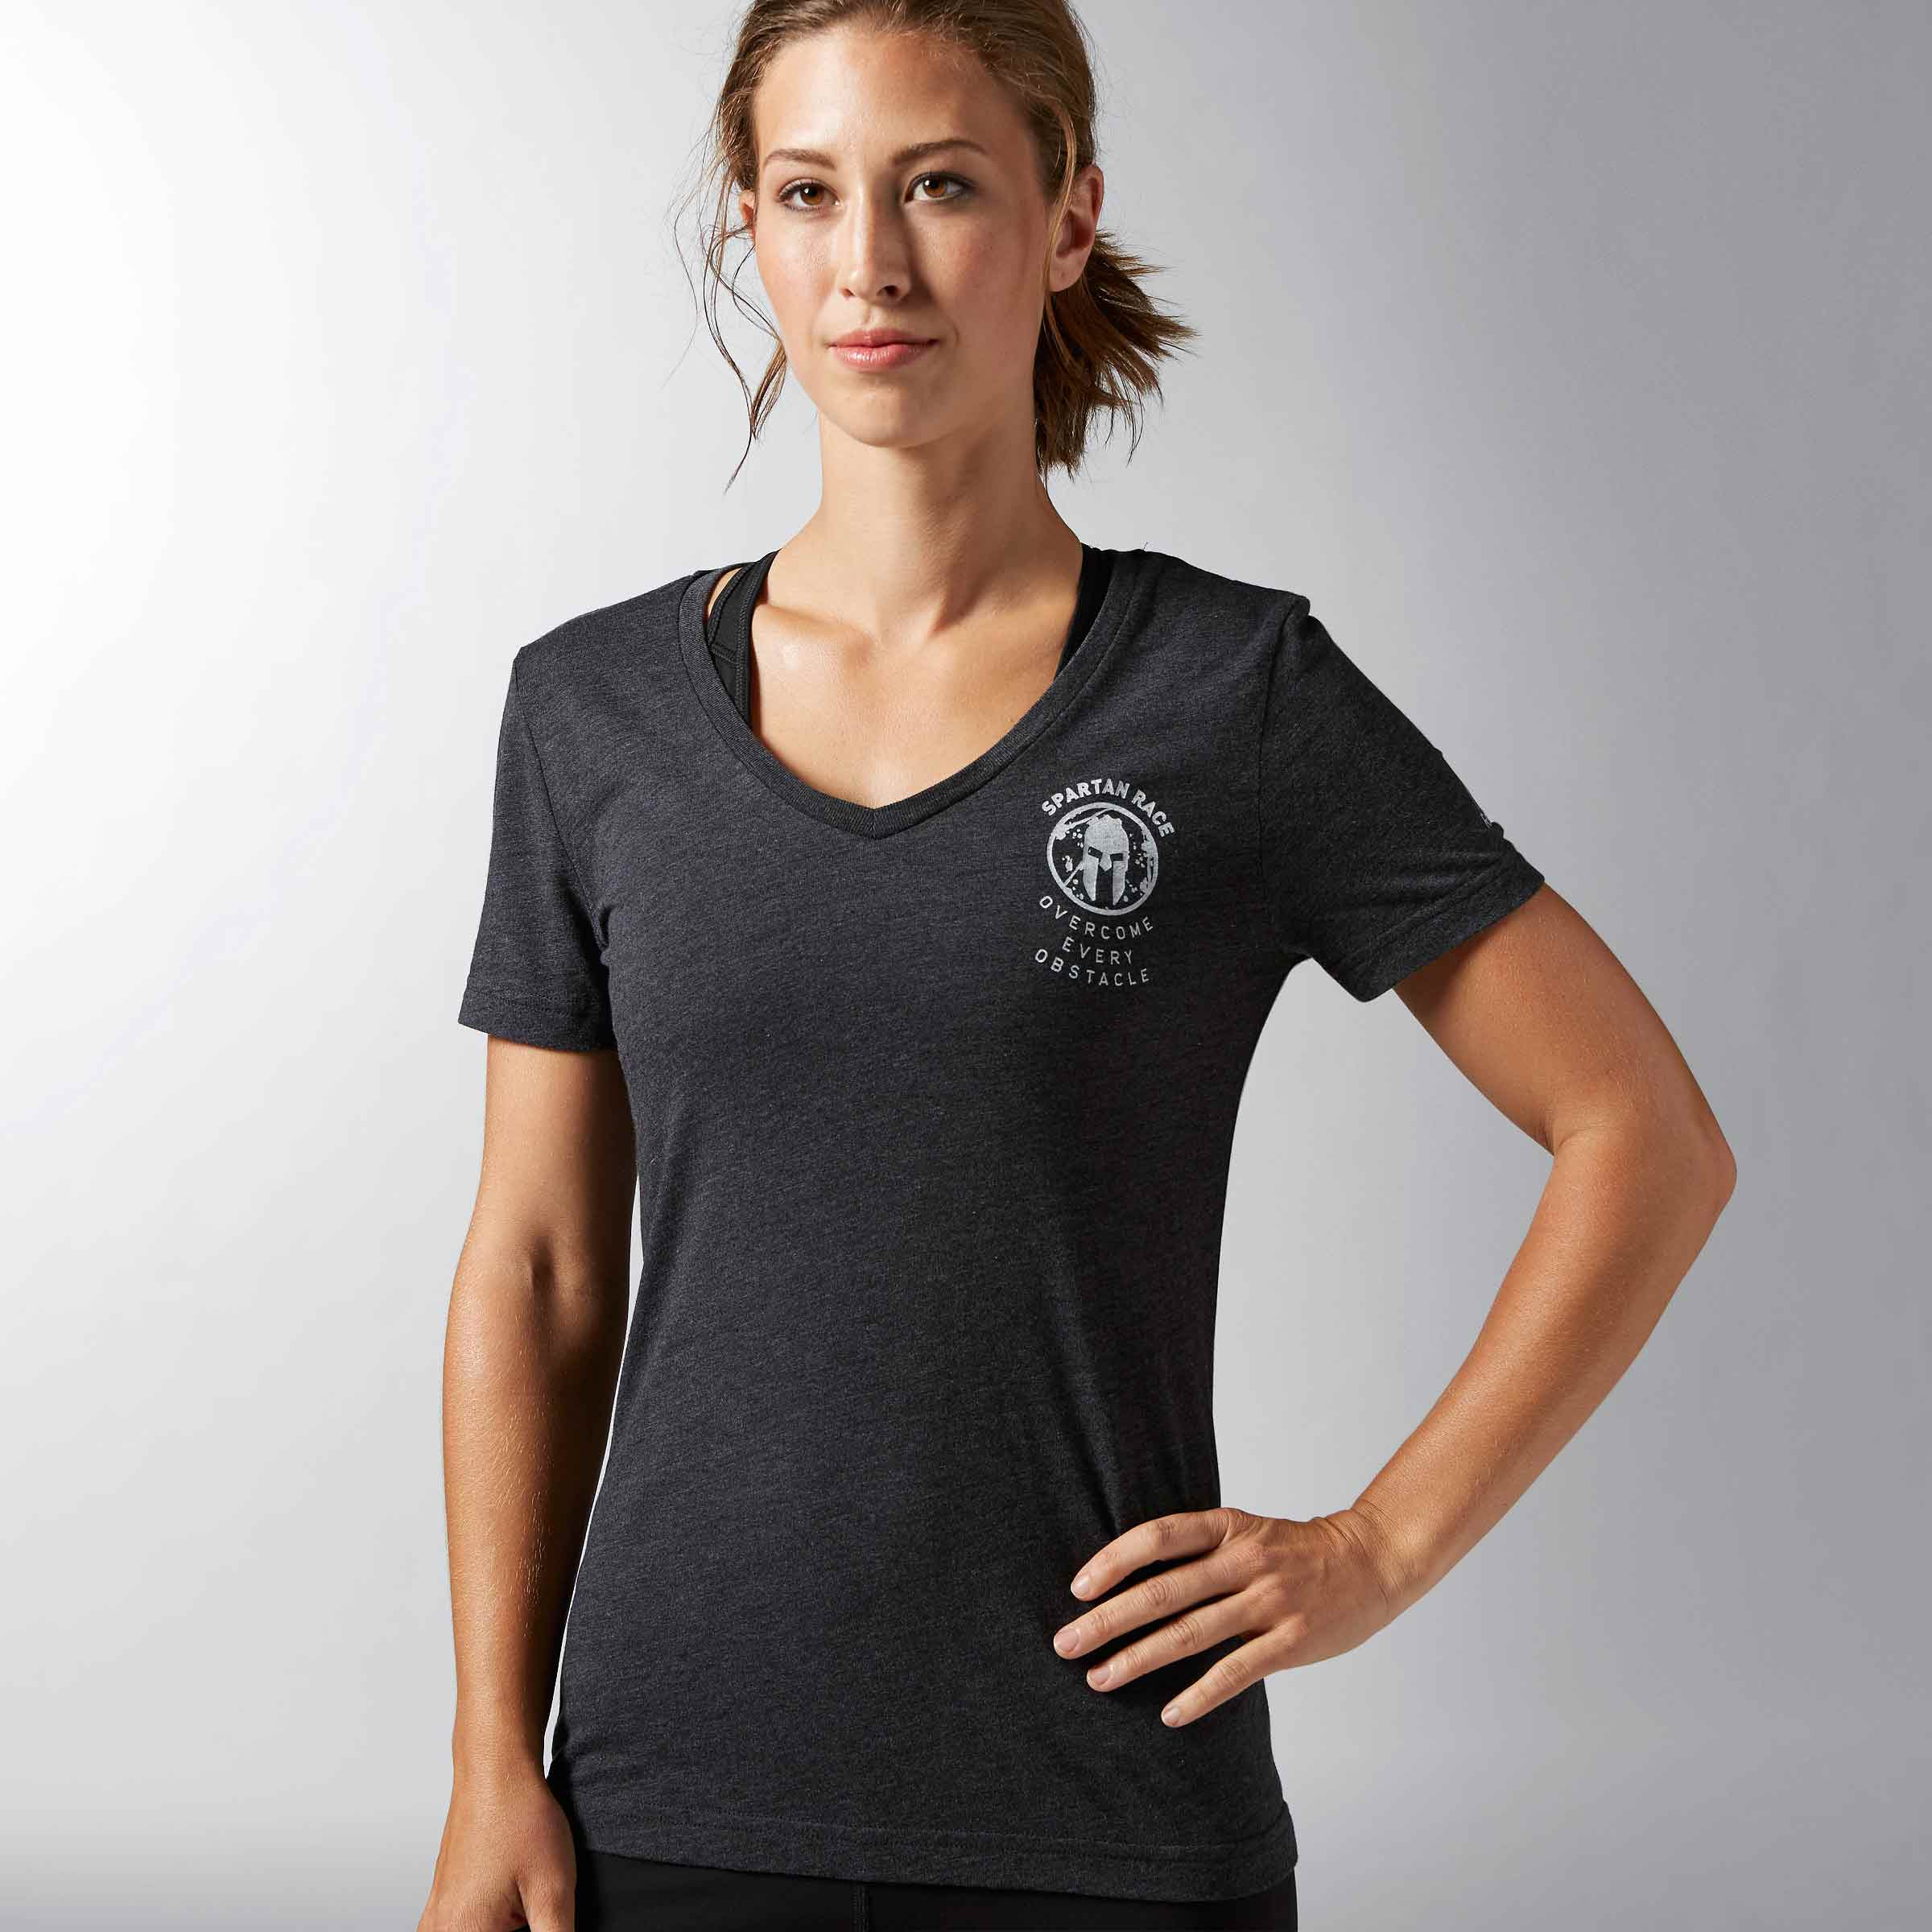 Spartan Race slim fit t-shirt